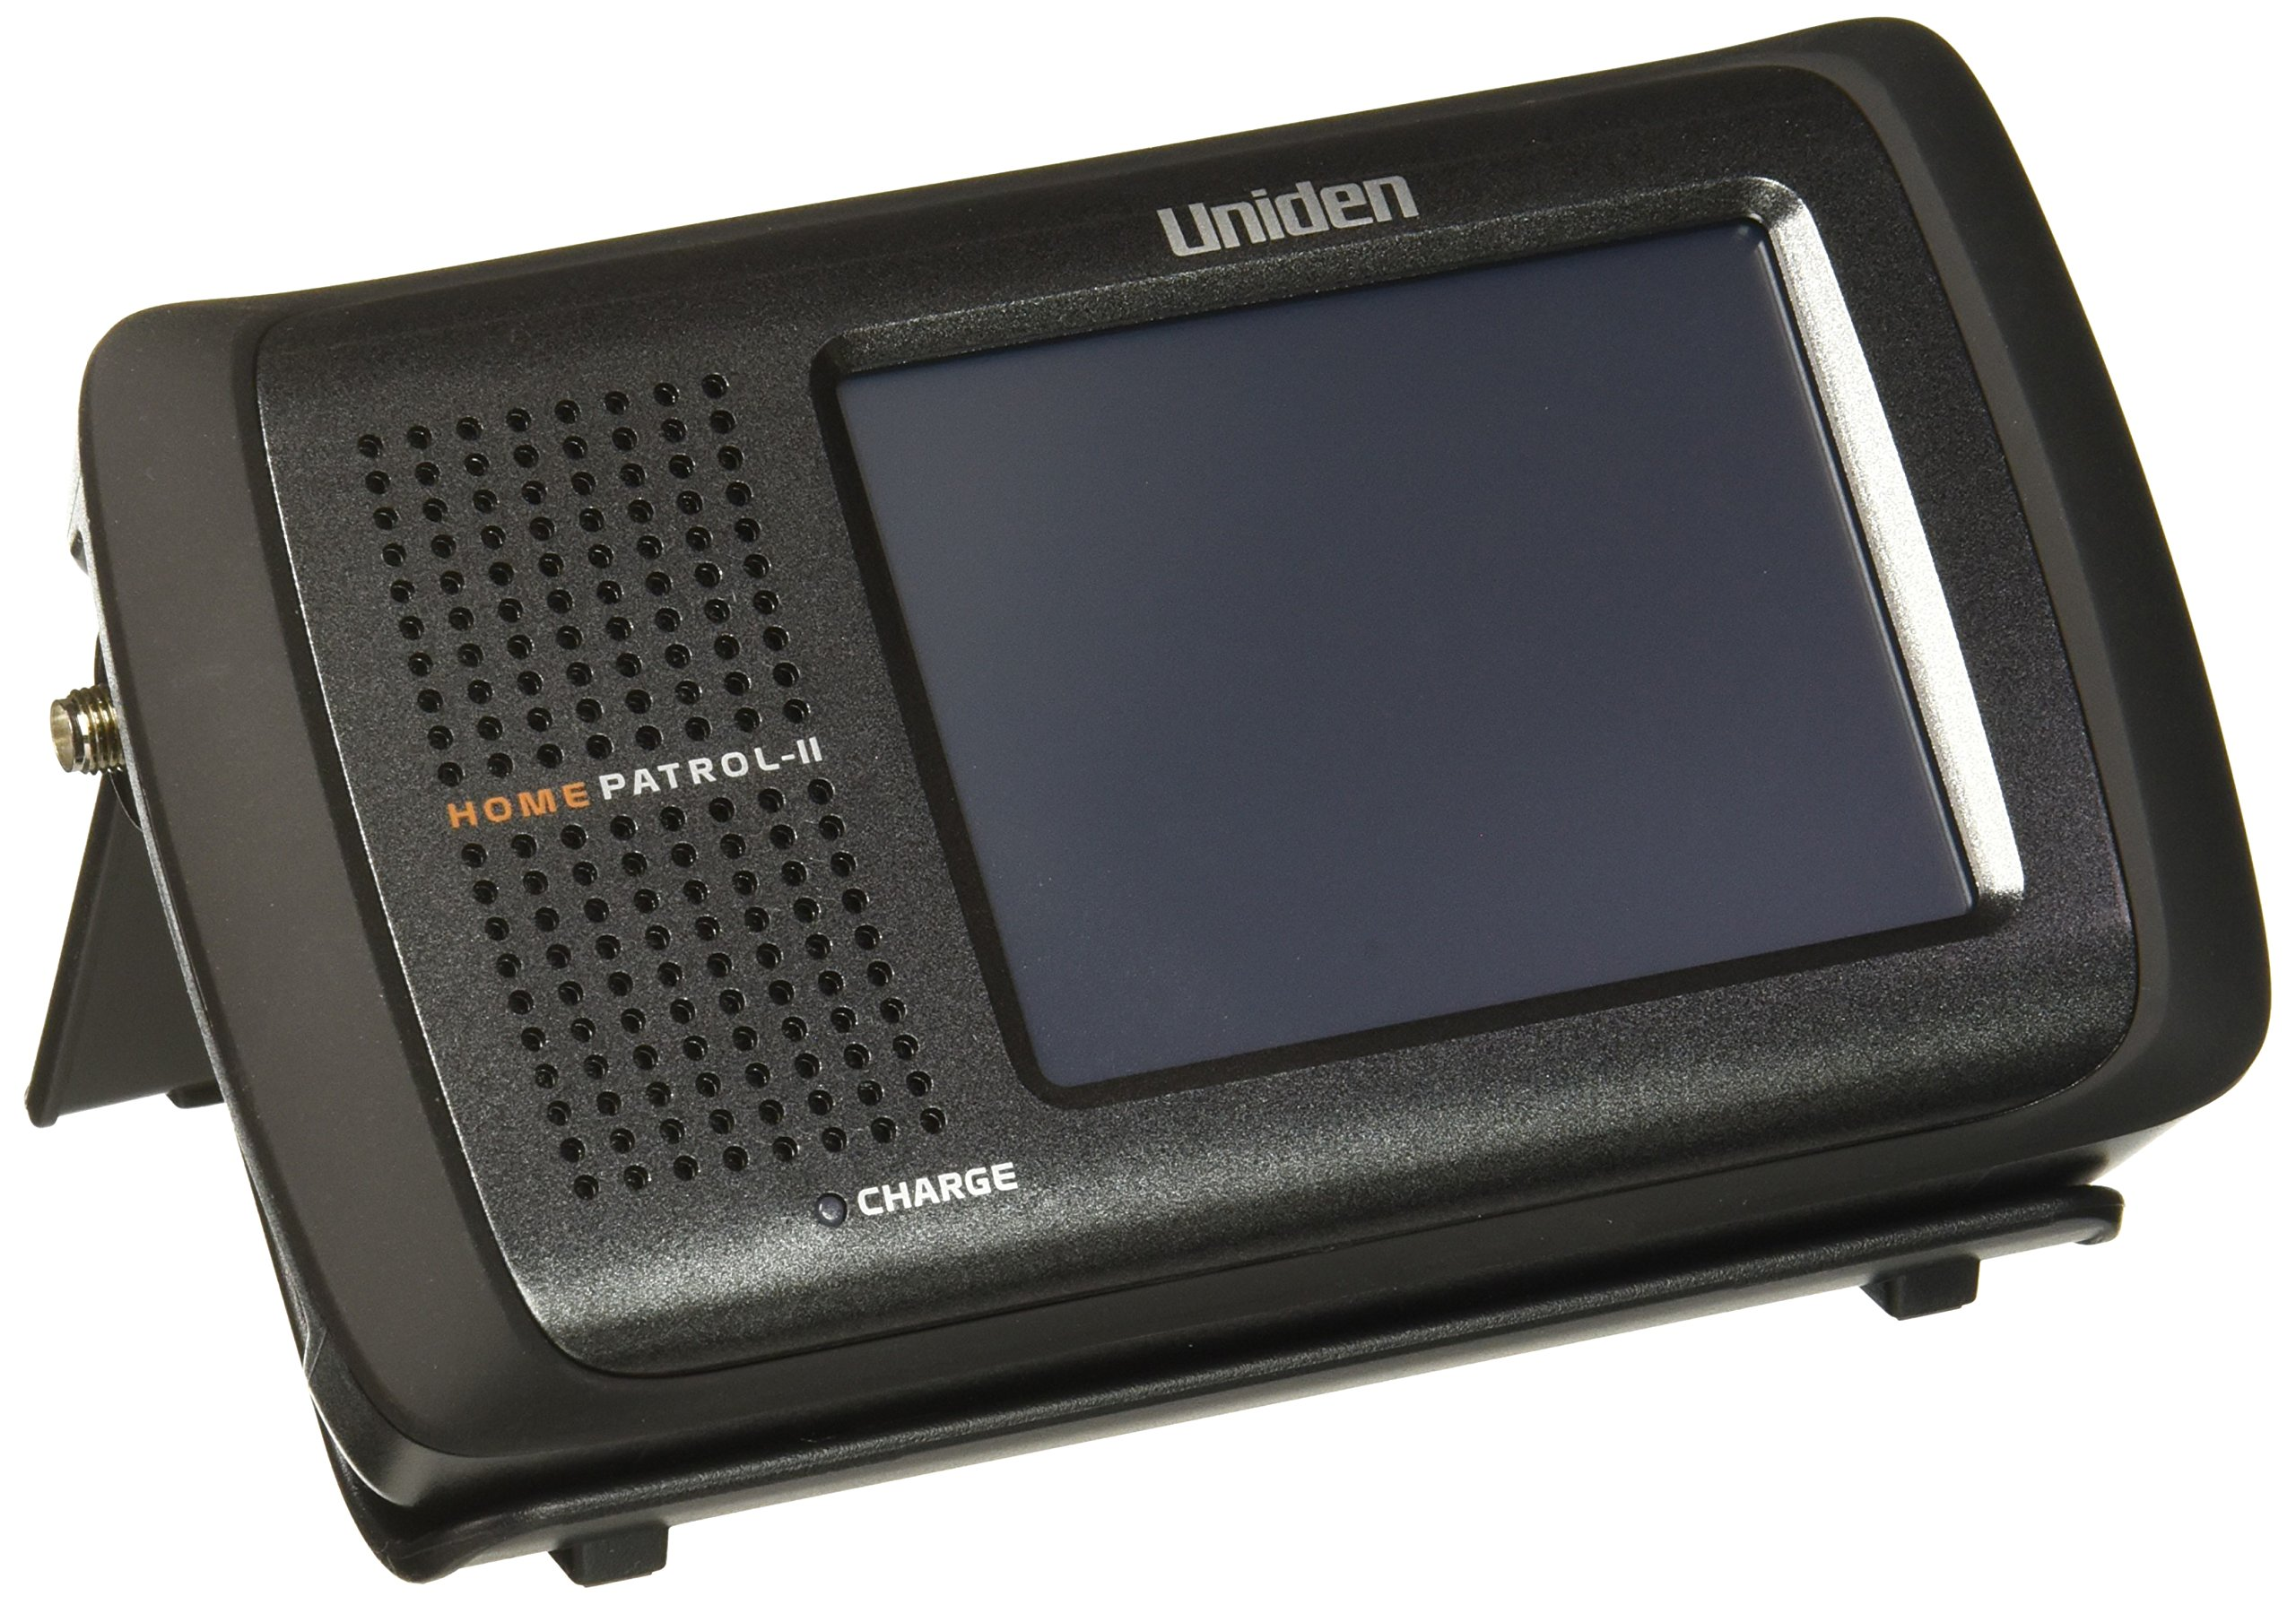 Uniden HomePatrol II TouchScreen Digital Scanner APCO P25 Phase 1 and 2 ! by Uniden (Image #1)